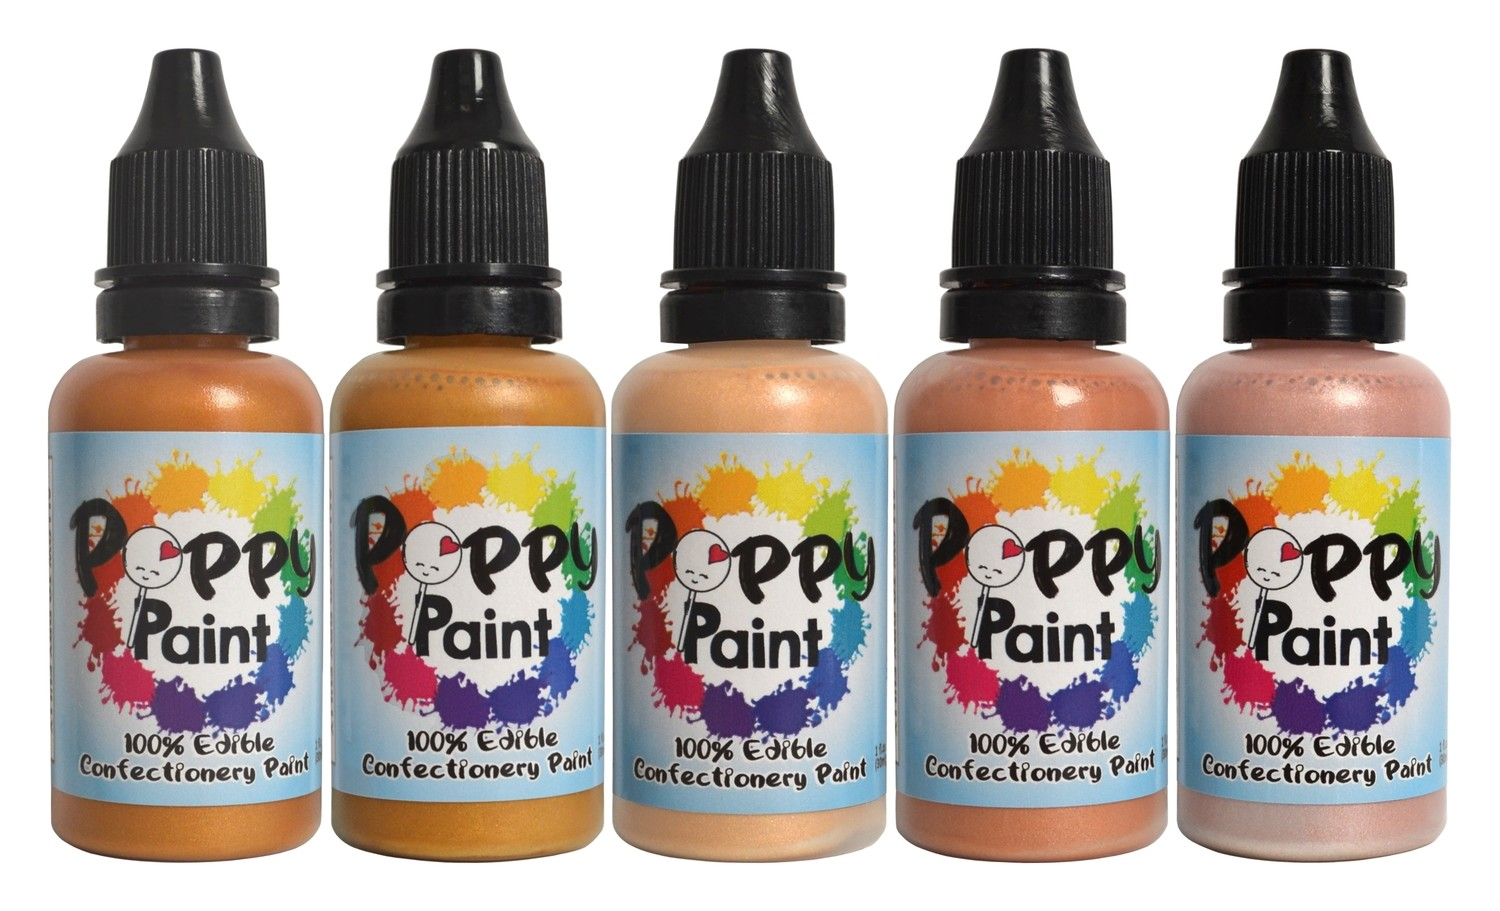 Poppy Paint Pearlescents All That Glitters Set (100% Edible)